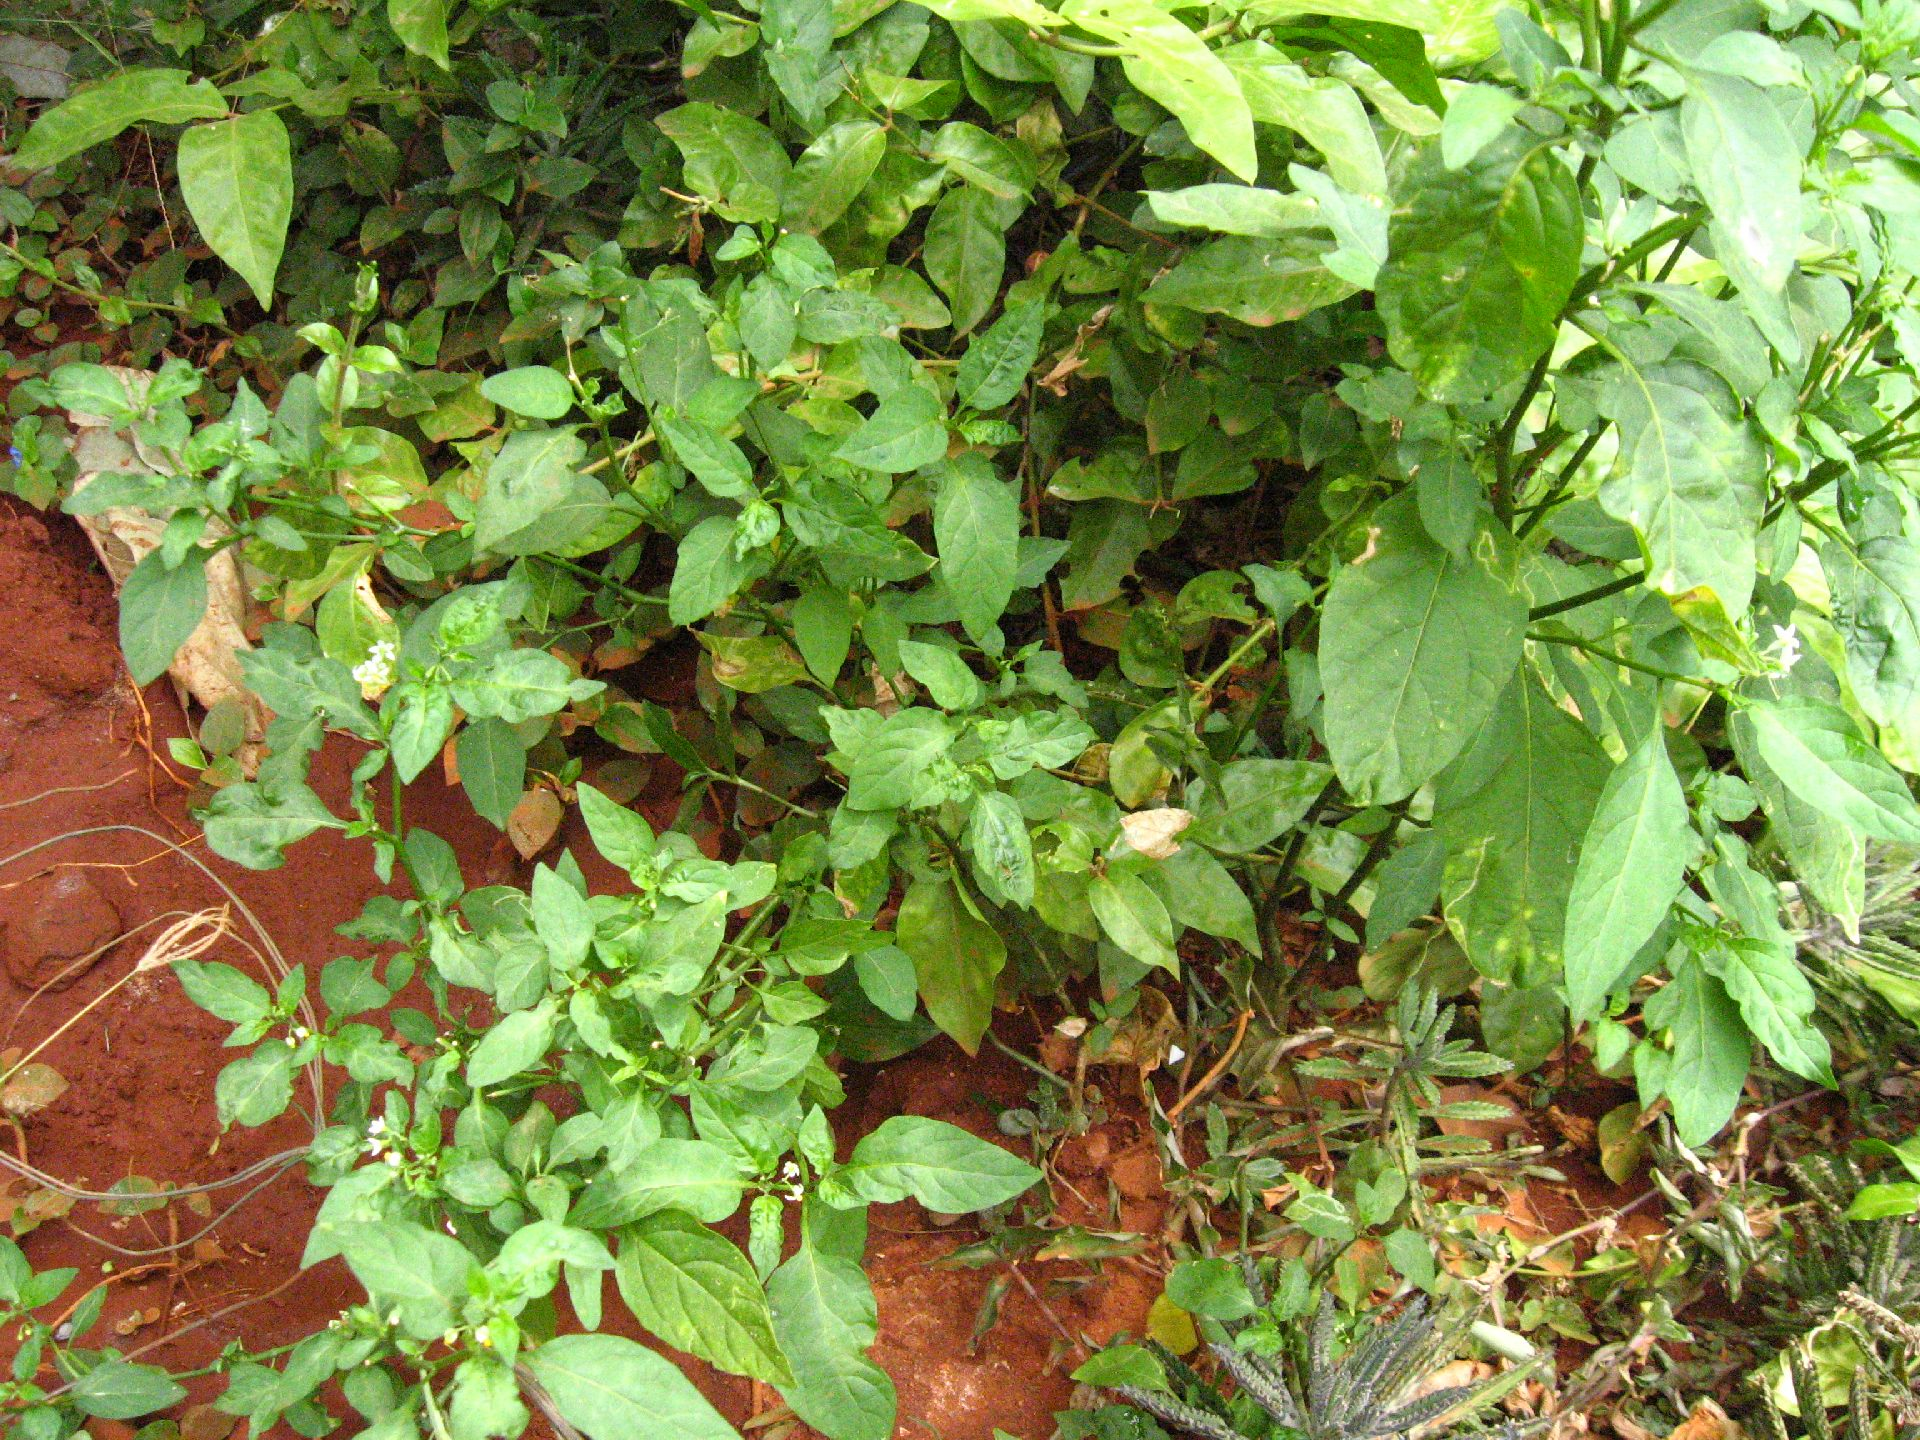 Picture of Black Nightshade or Green Nightshade